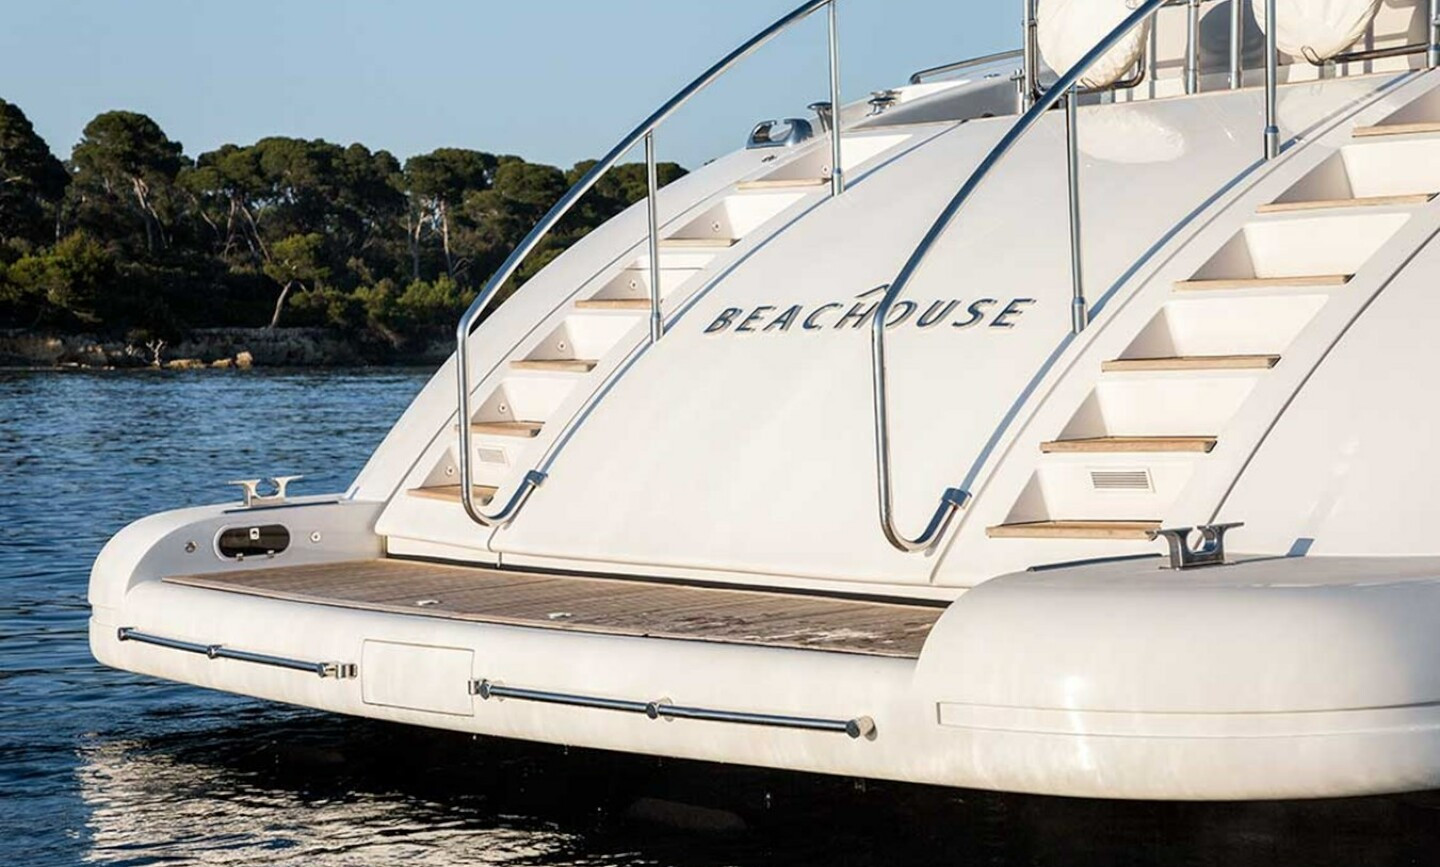 Beachouse yacht for Sale 26